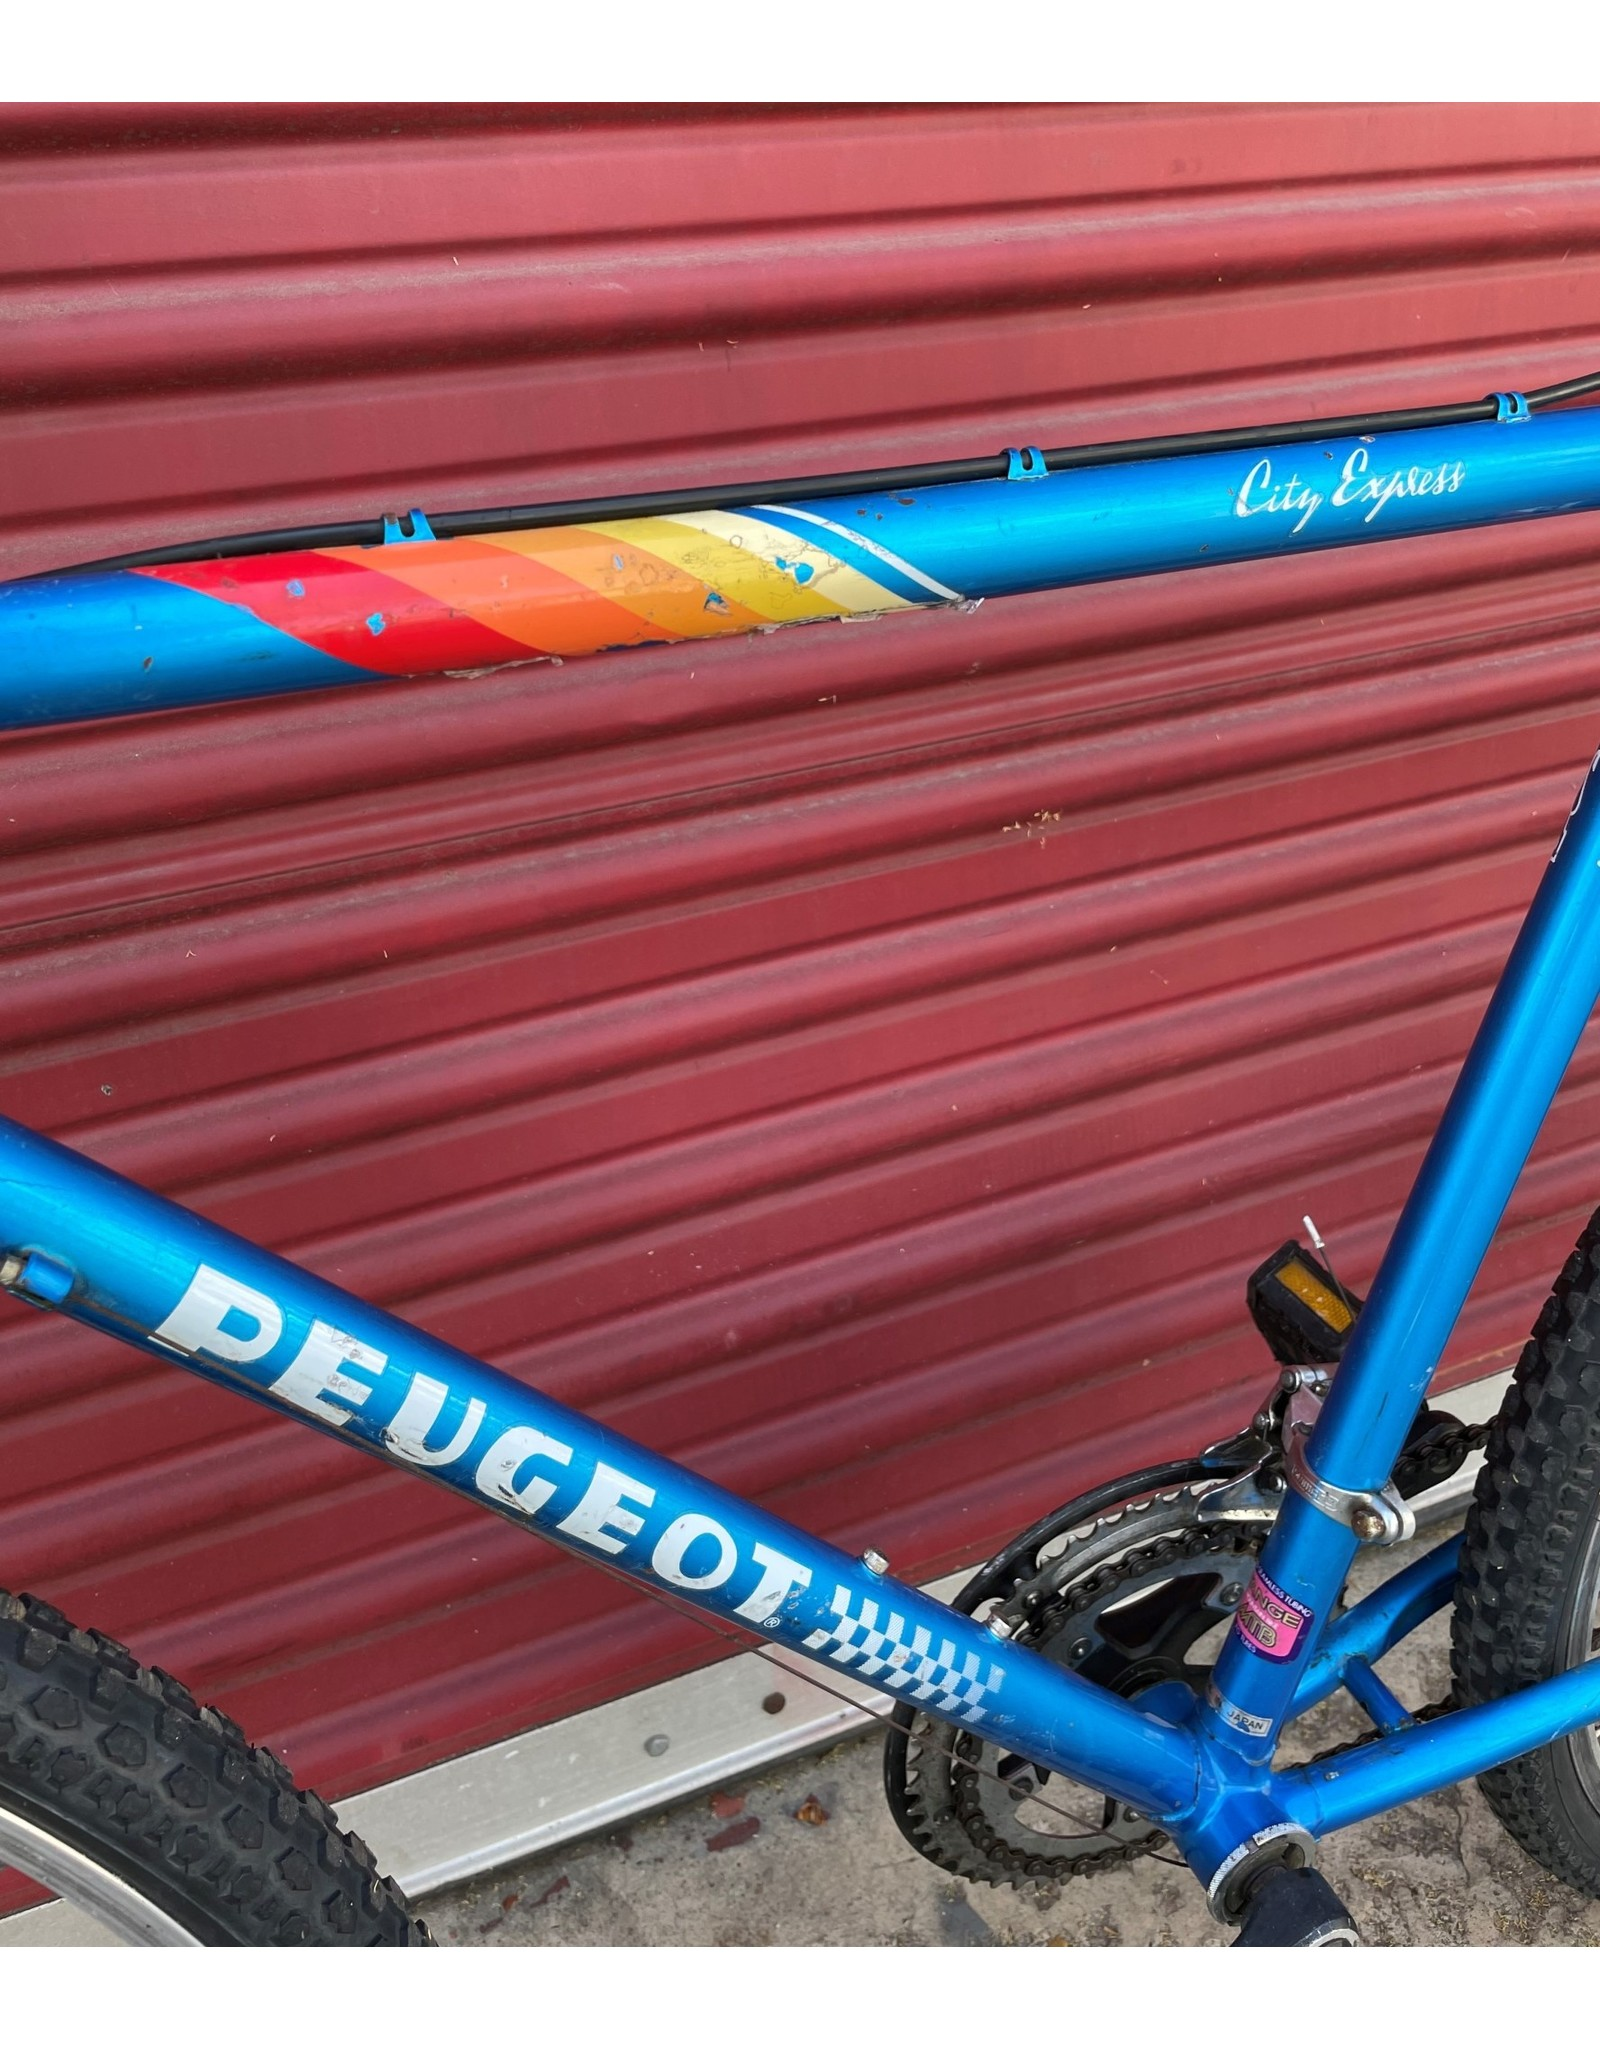 Peugeot Peugeot City Express Vintage, 1985, 21 Inches, Teal